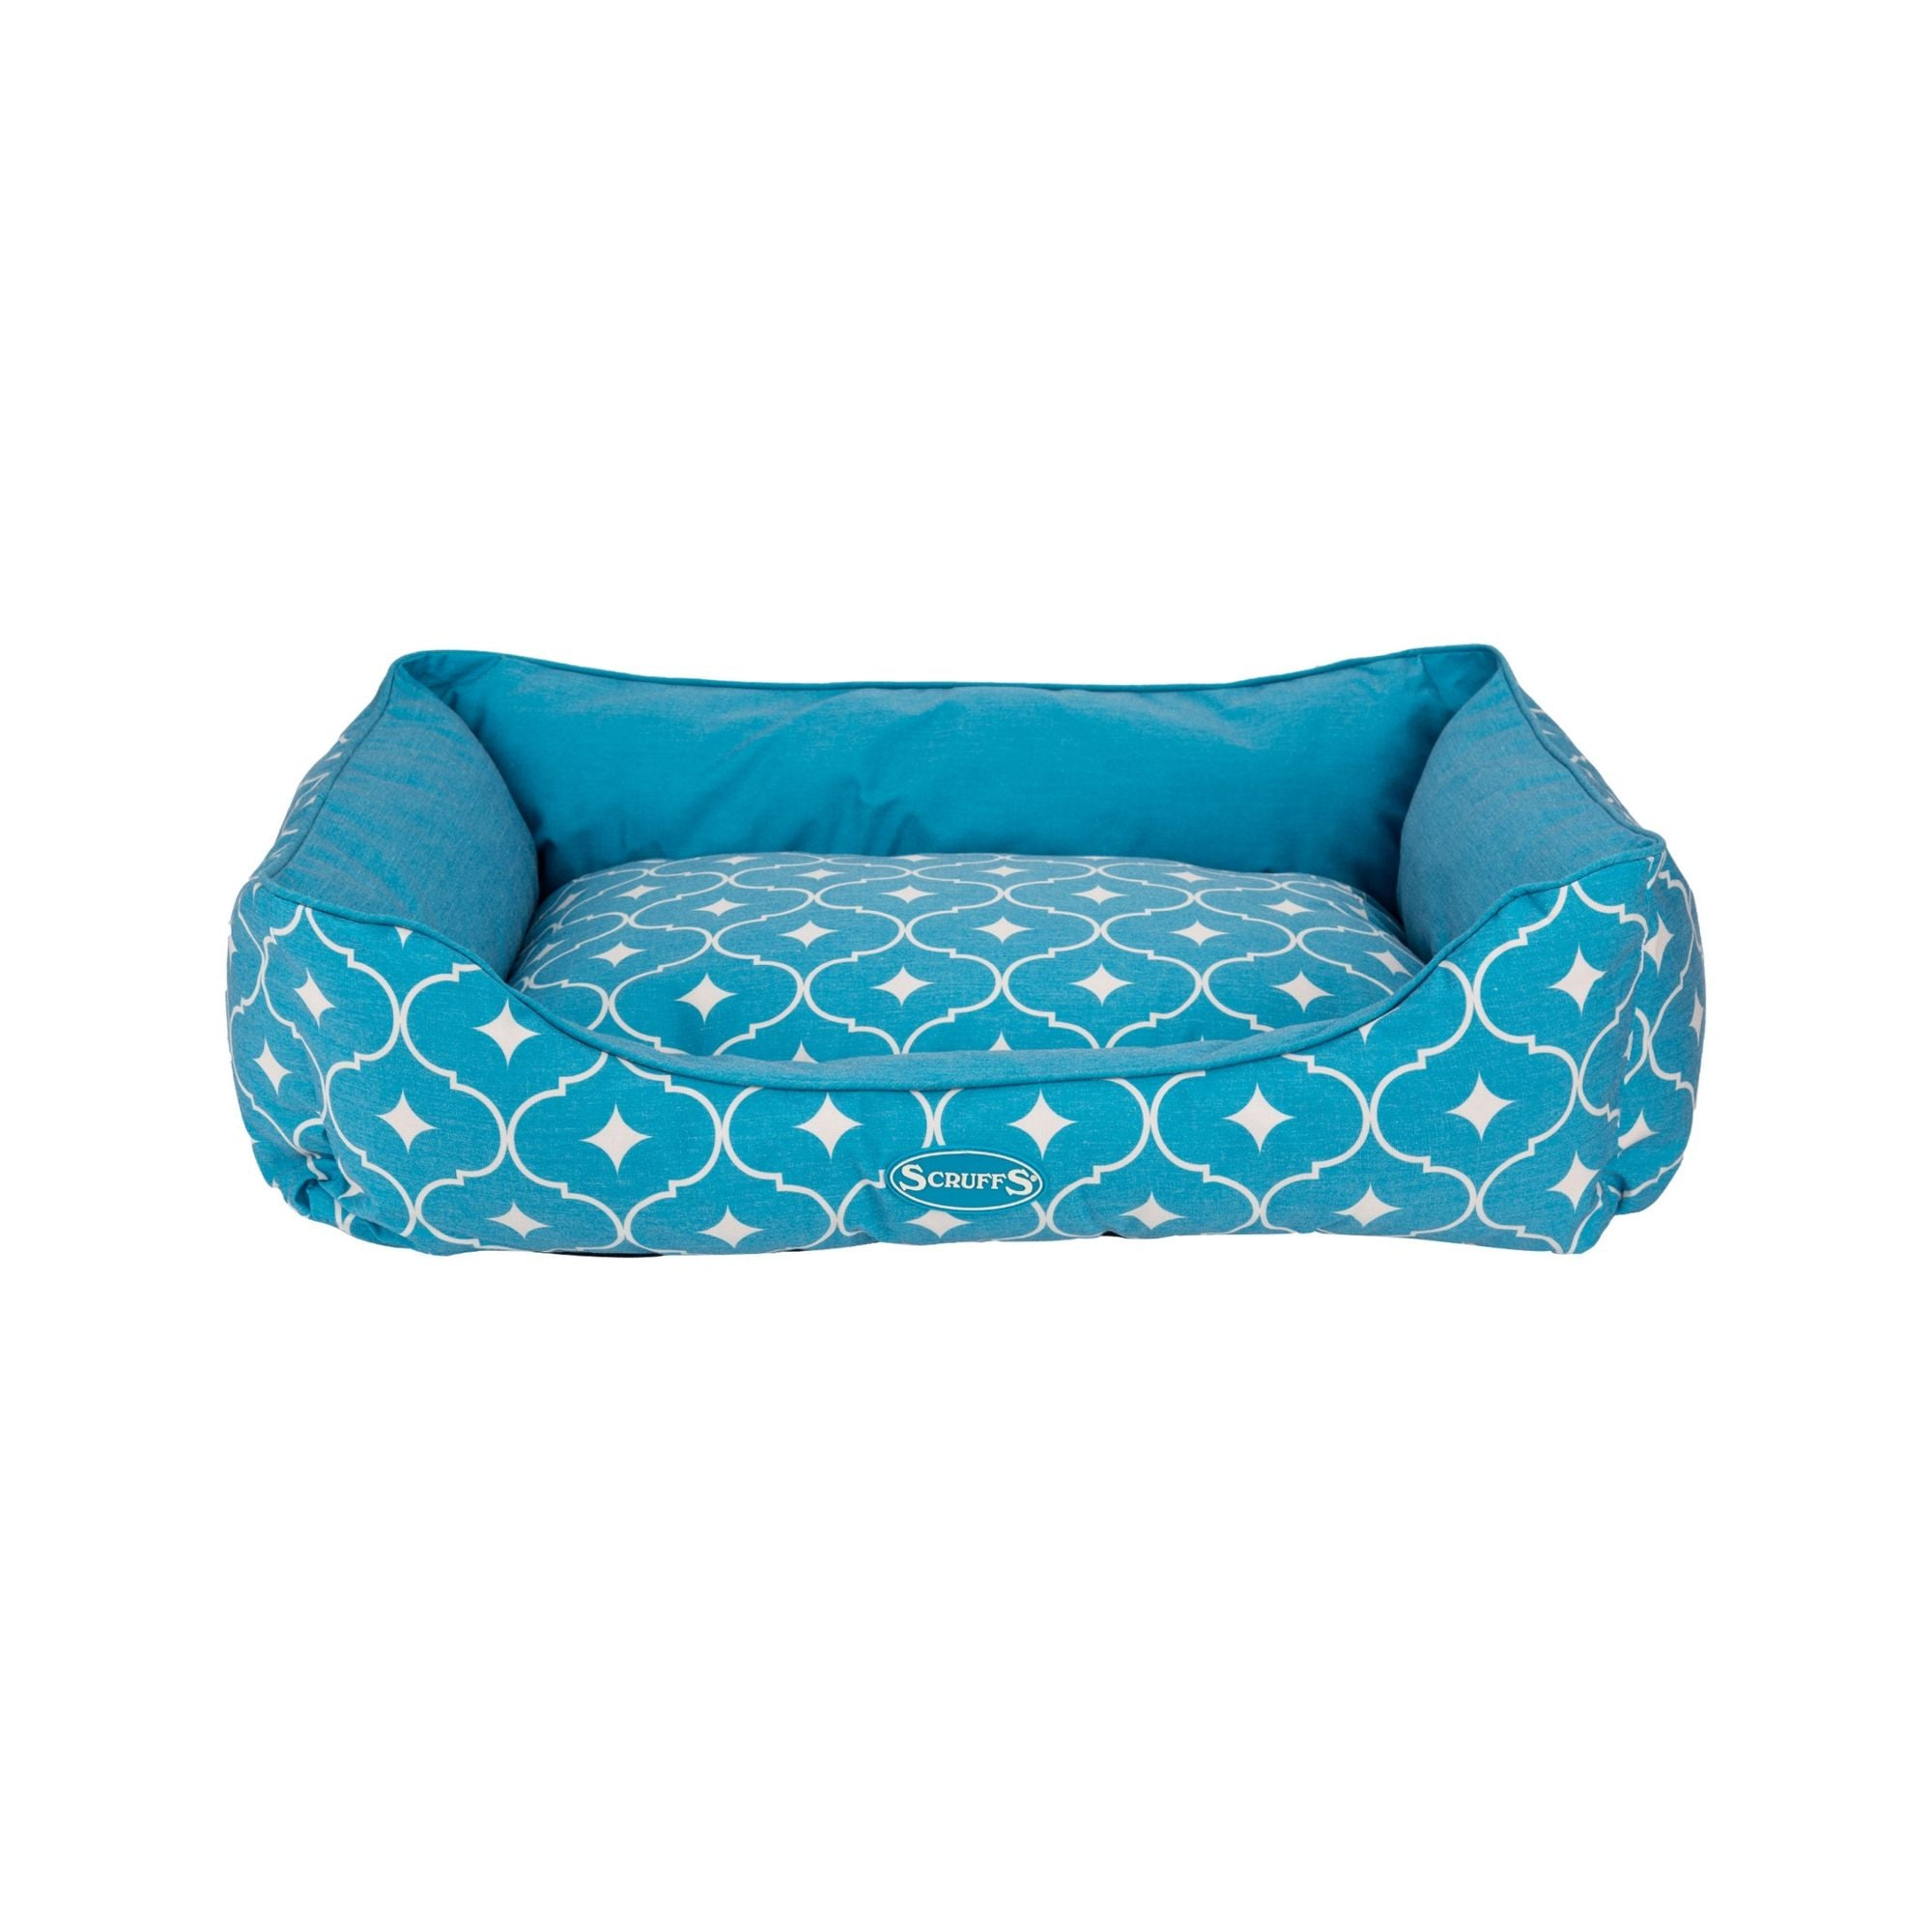 Scruffs Casablanca Box Bed Blue, Tough Dog Bed | Barks & Bunnies